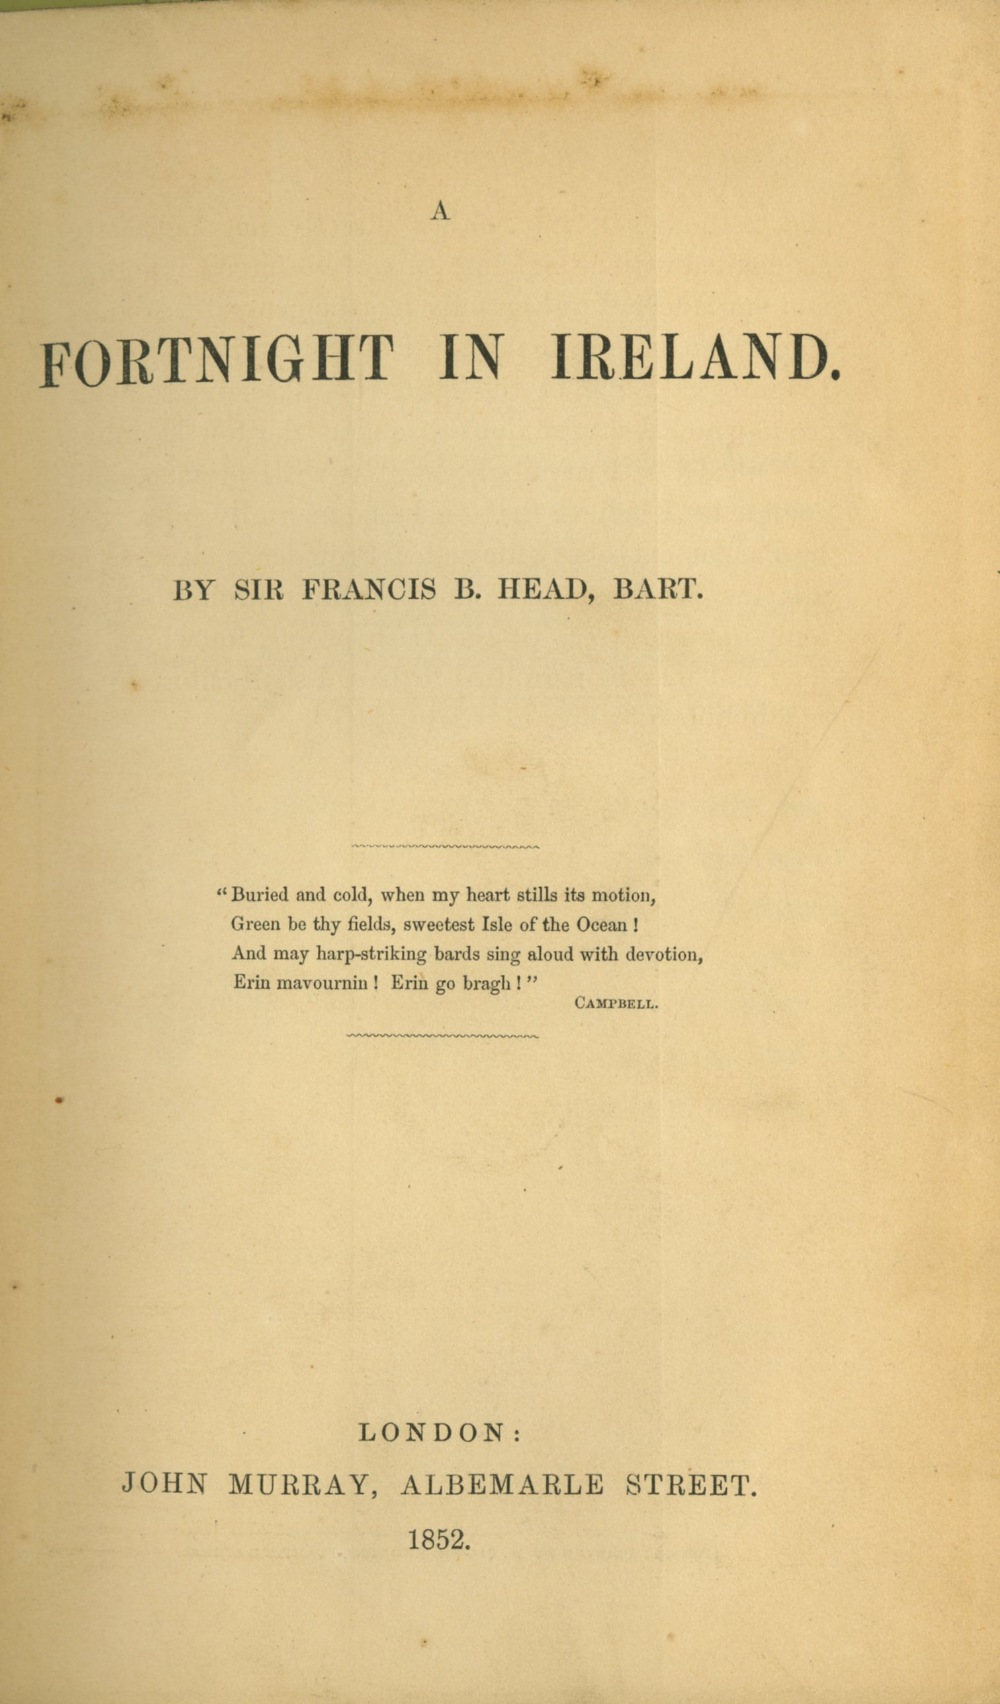 Irish Travel: Head (Sir F.B.) A Fortnight in Ireland, 8vo L. 1852. First Edn., fold.